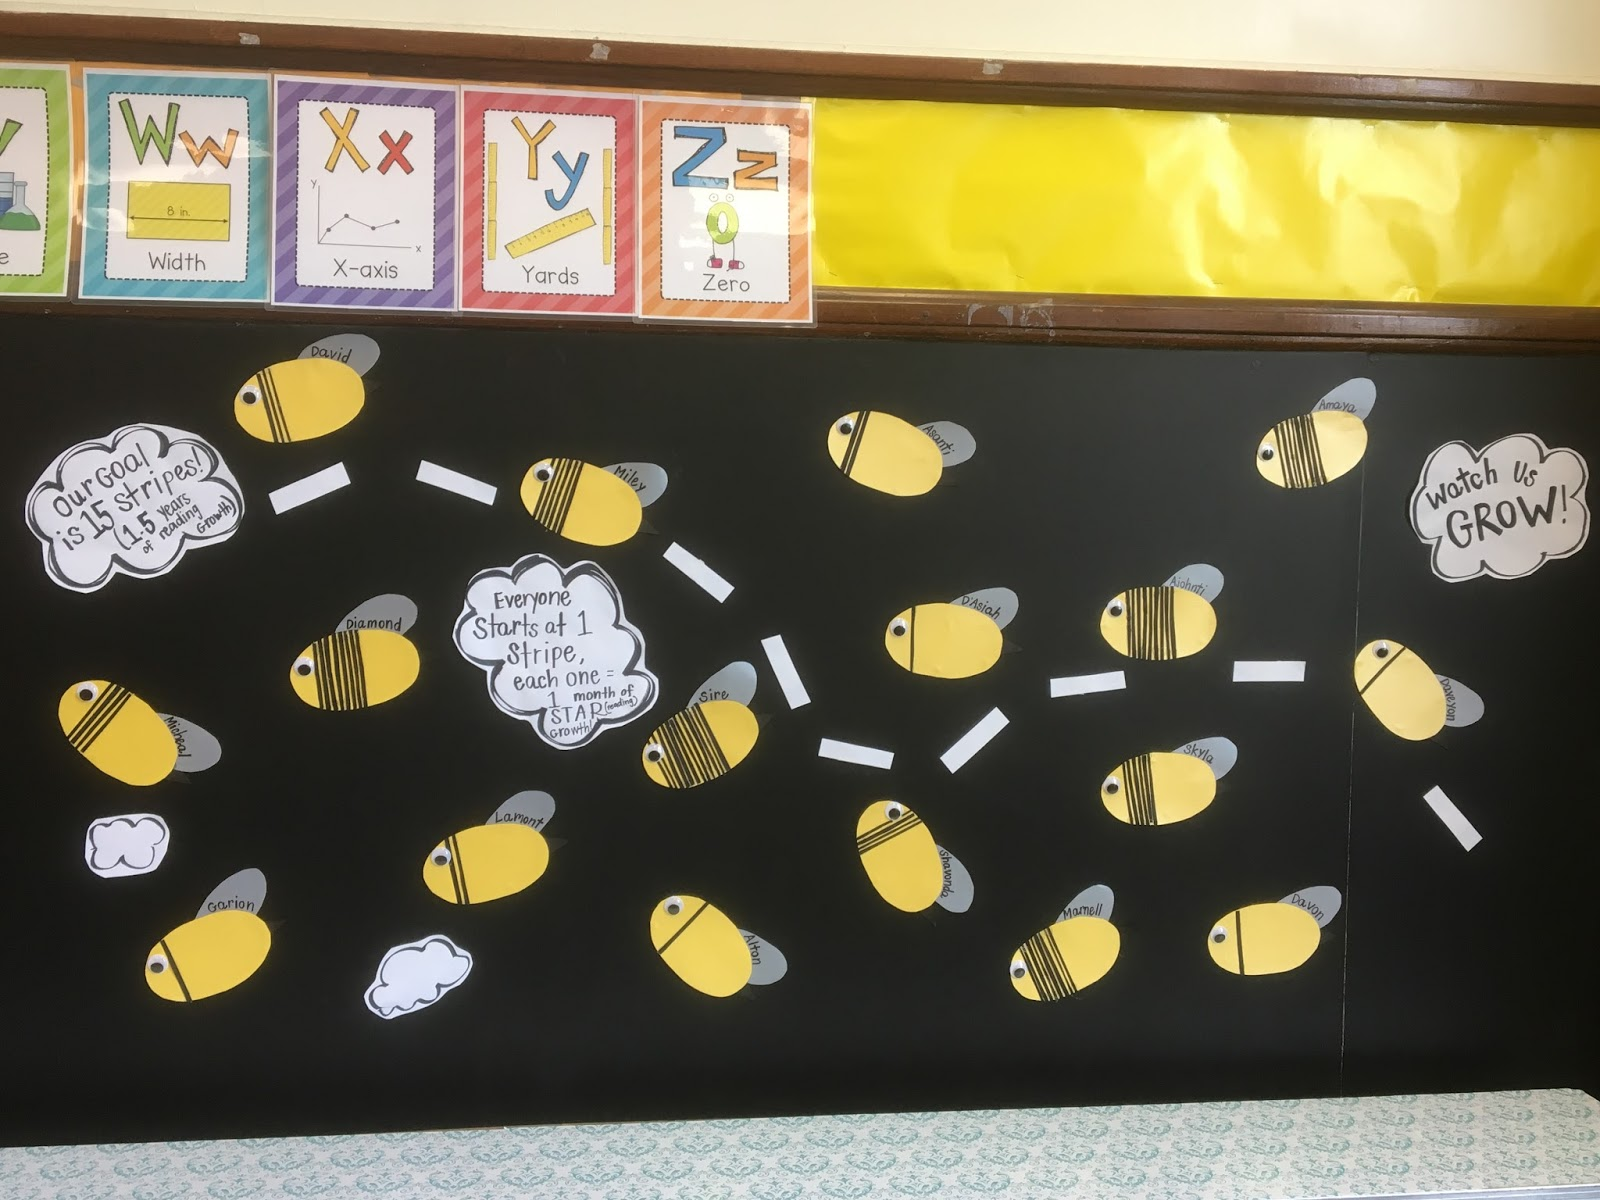 Ms Wolfenden Adds Stripes To Bumble Bees Each Time A Student Makes Month Of STAR Reading Growth